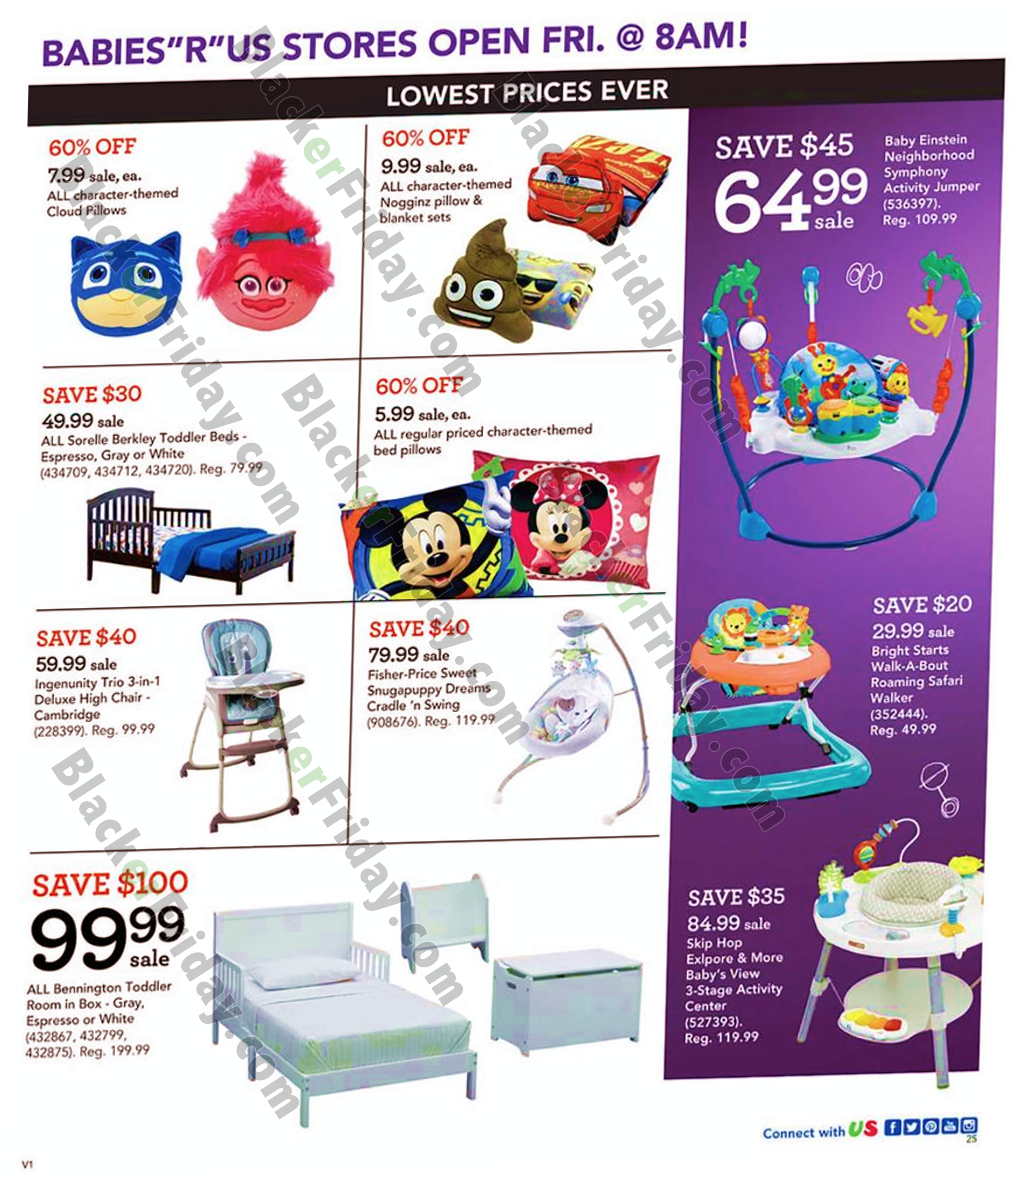 Toys R Us & Babies R Us South Africa ushers in the season with the reveal of unbelievable Black Friday deals Toys R Us and Babies R Us South Africa is .